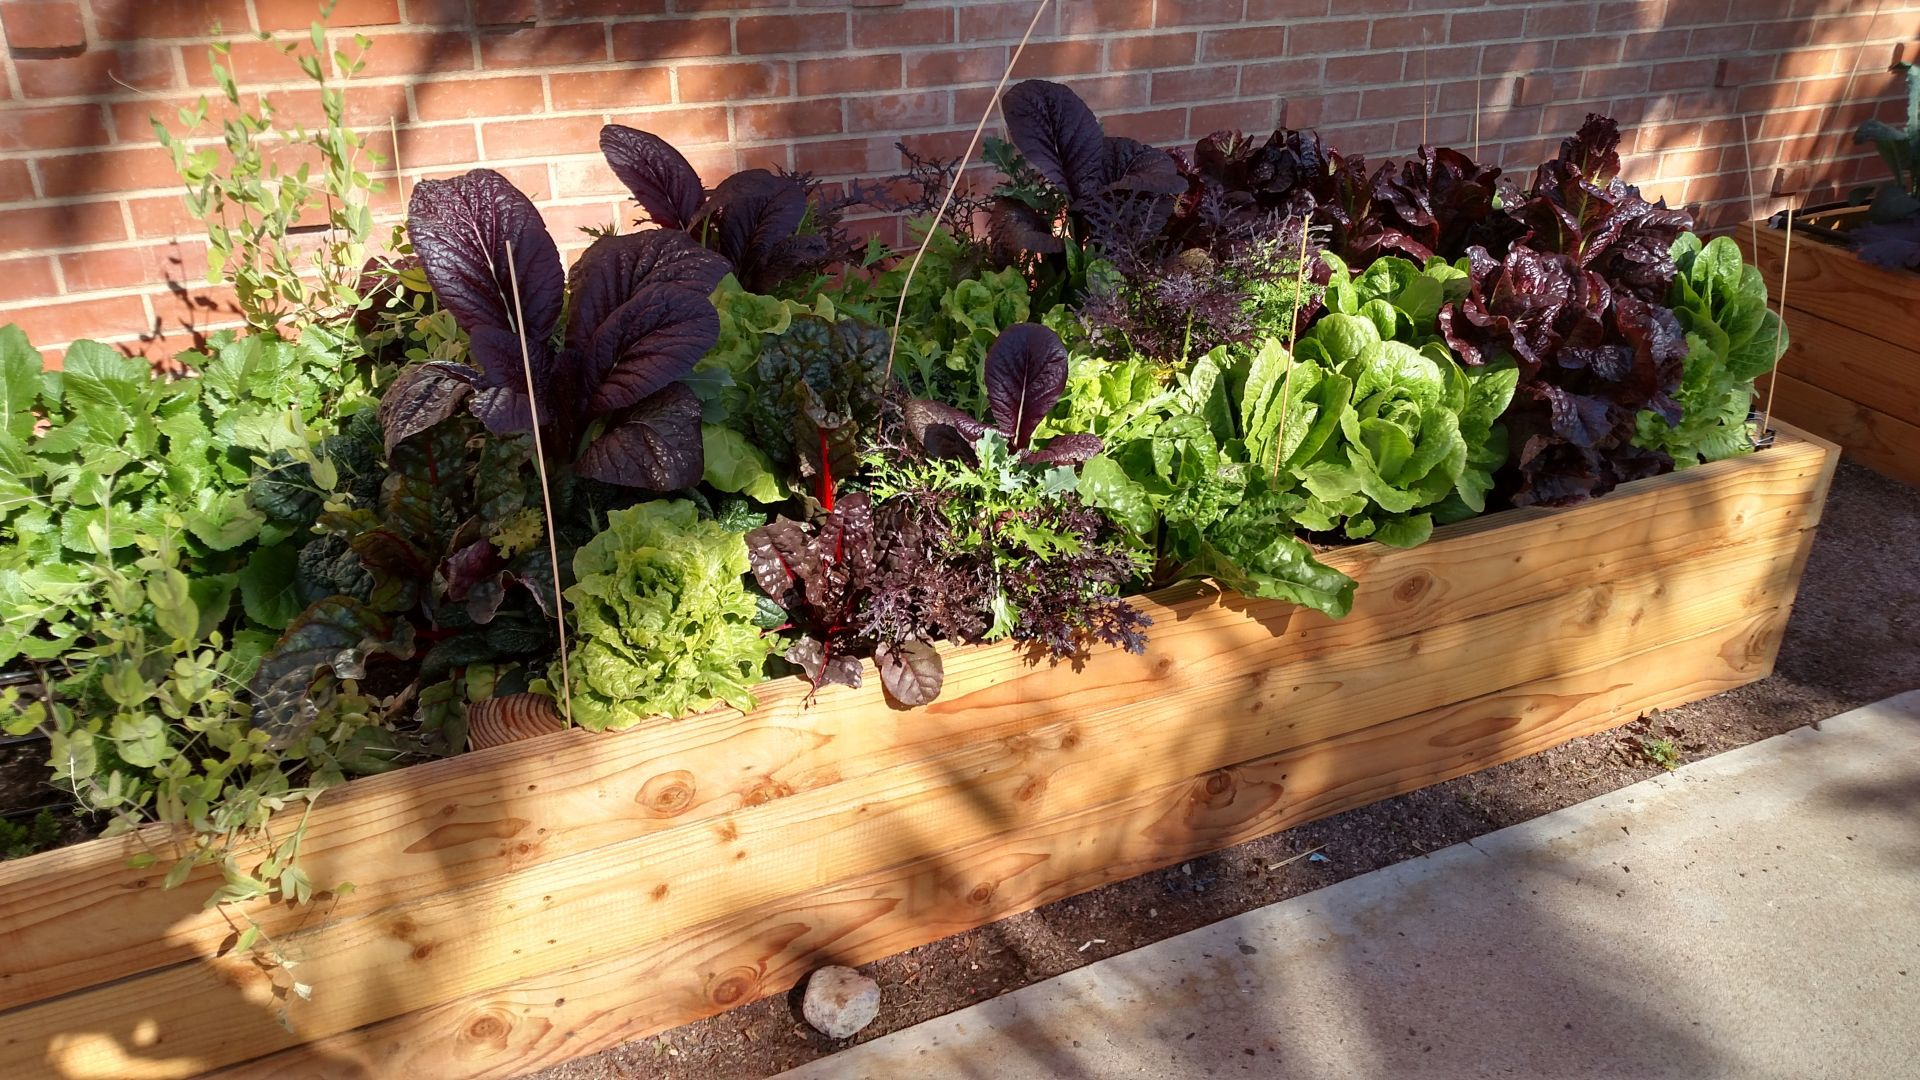 Purple Mustard Greens And Red Swiss Chard Add Color To A Winter Vegetable  Garden.